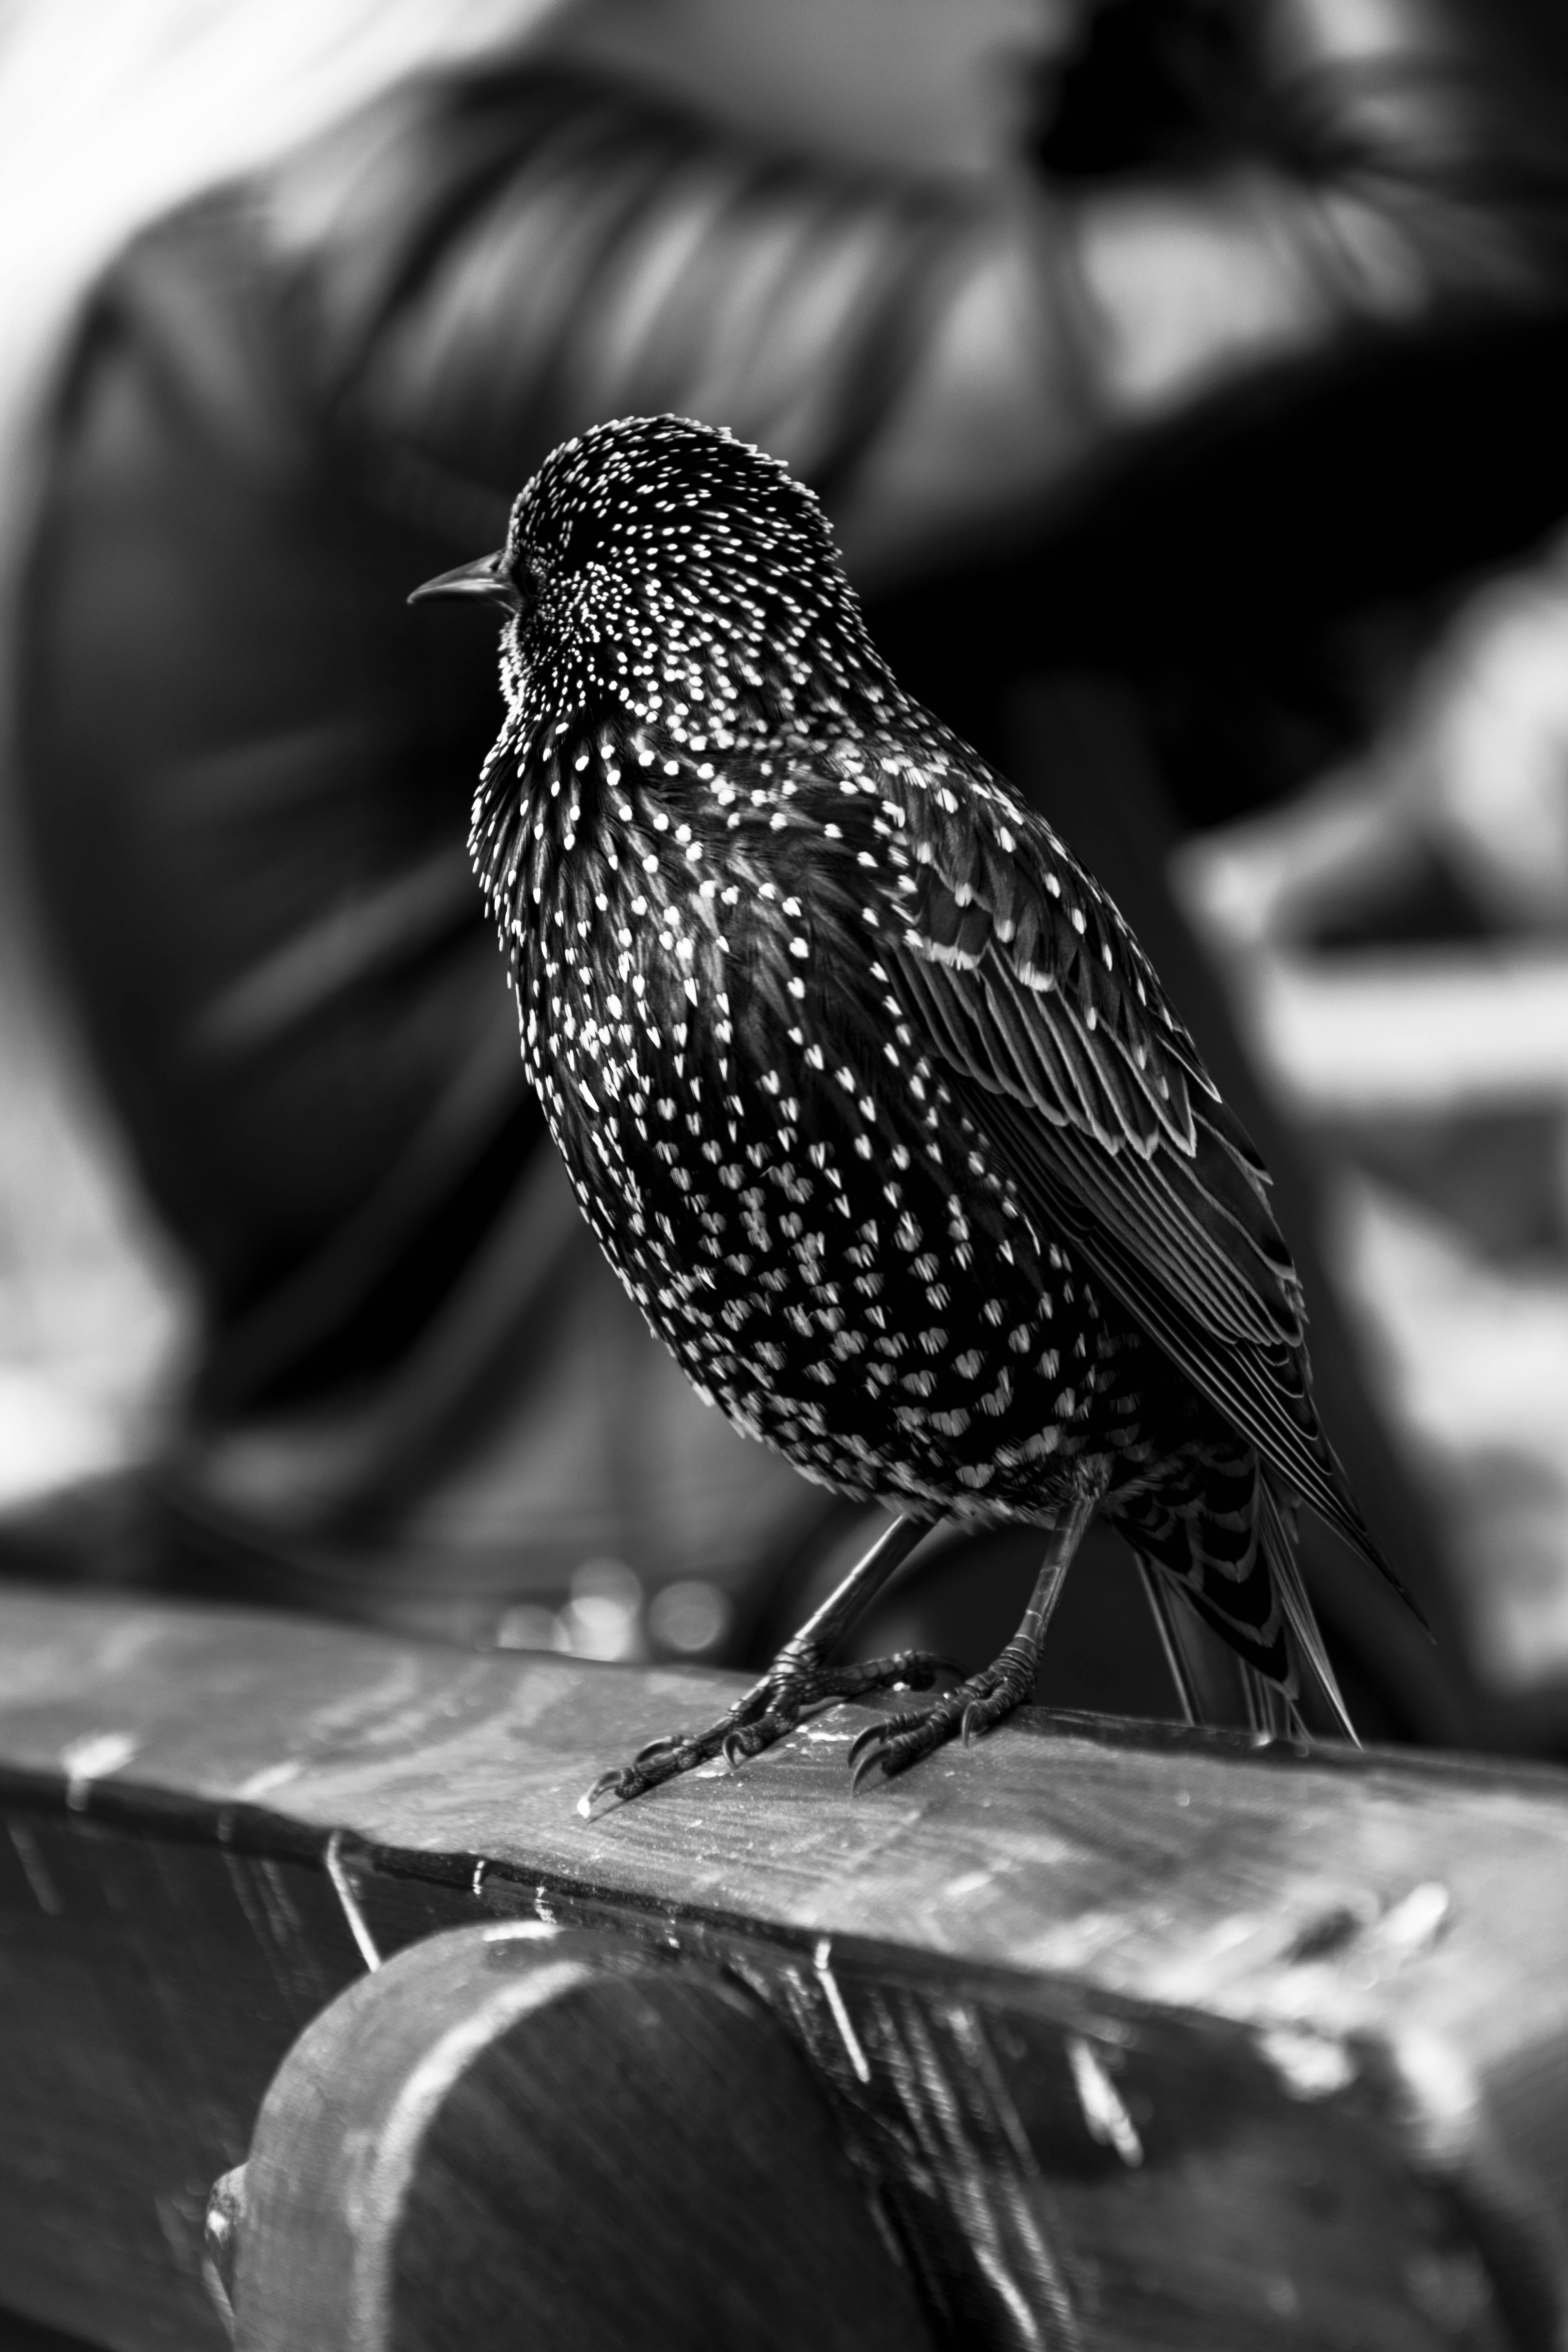 Grayscale Photo of Short Beaked Bird on Wooden Chair